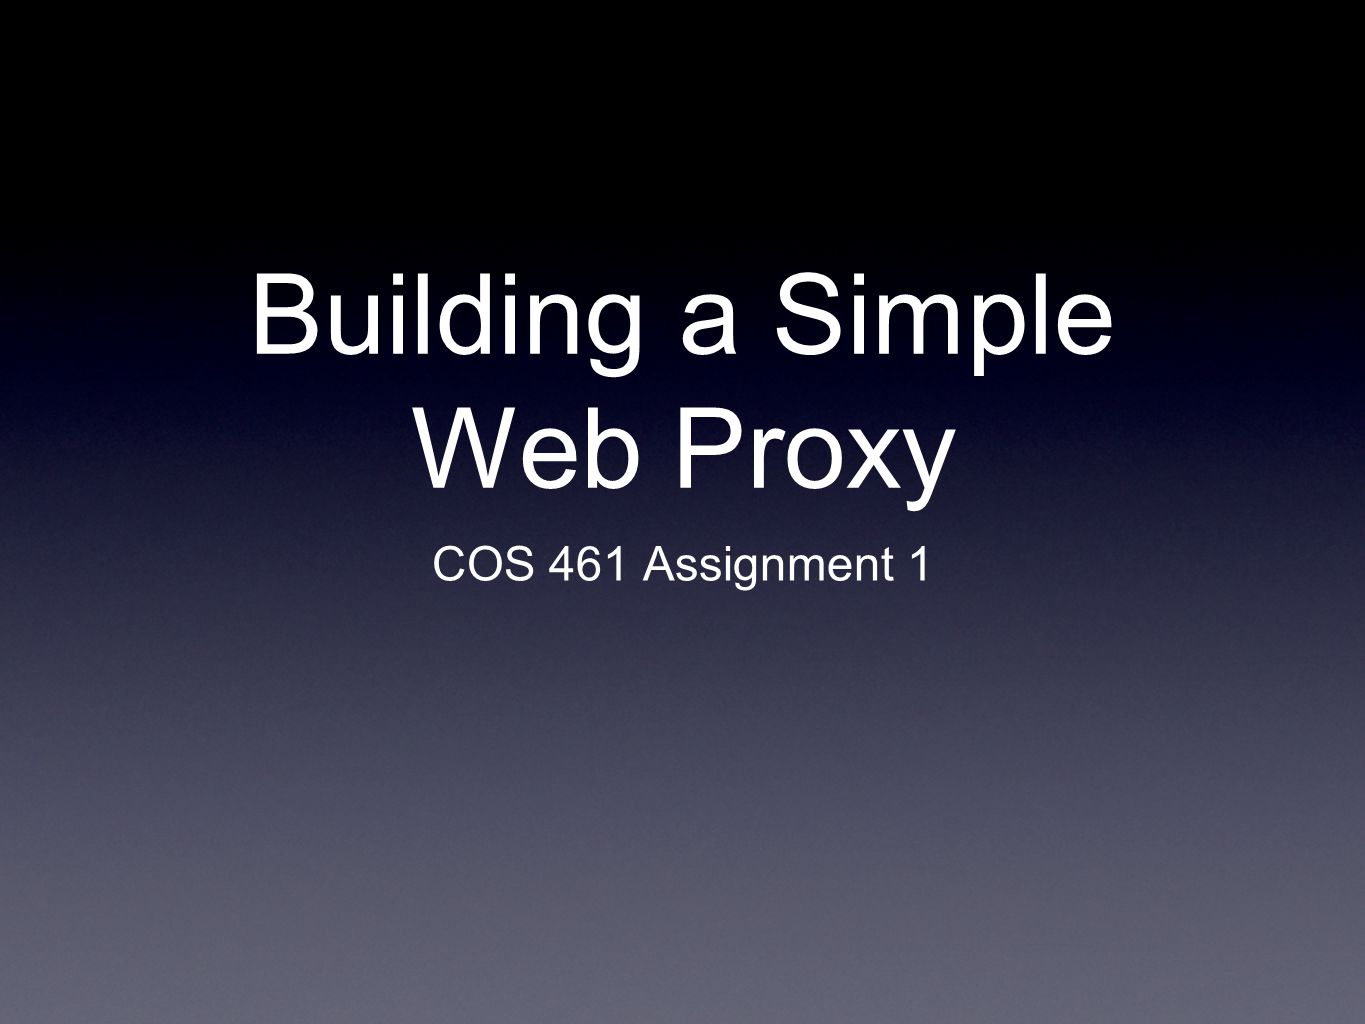 Building a Simple Web Proxy